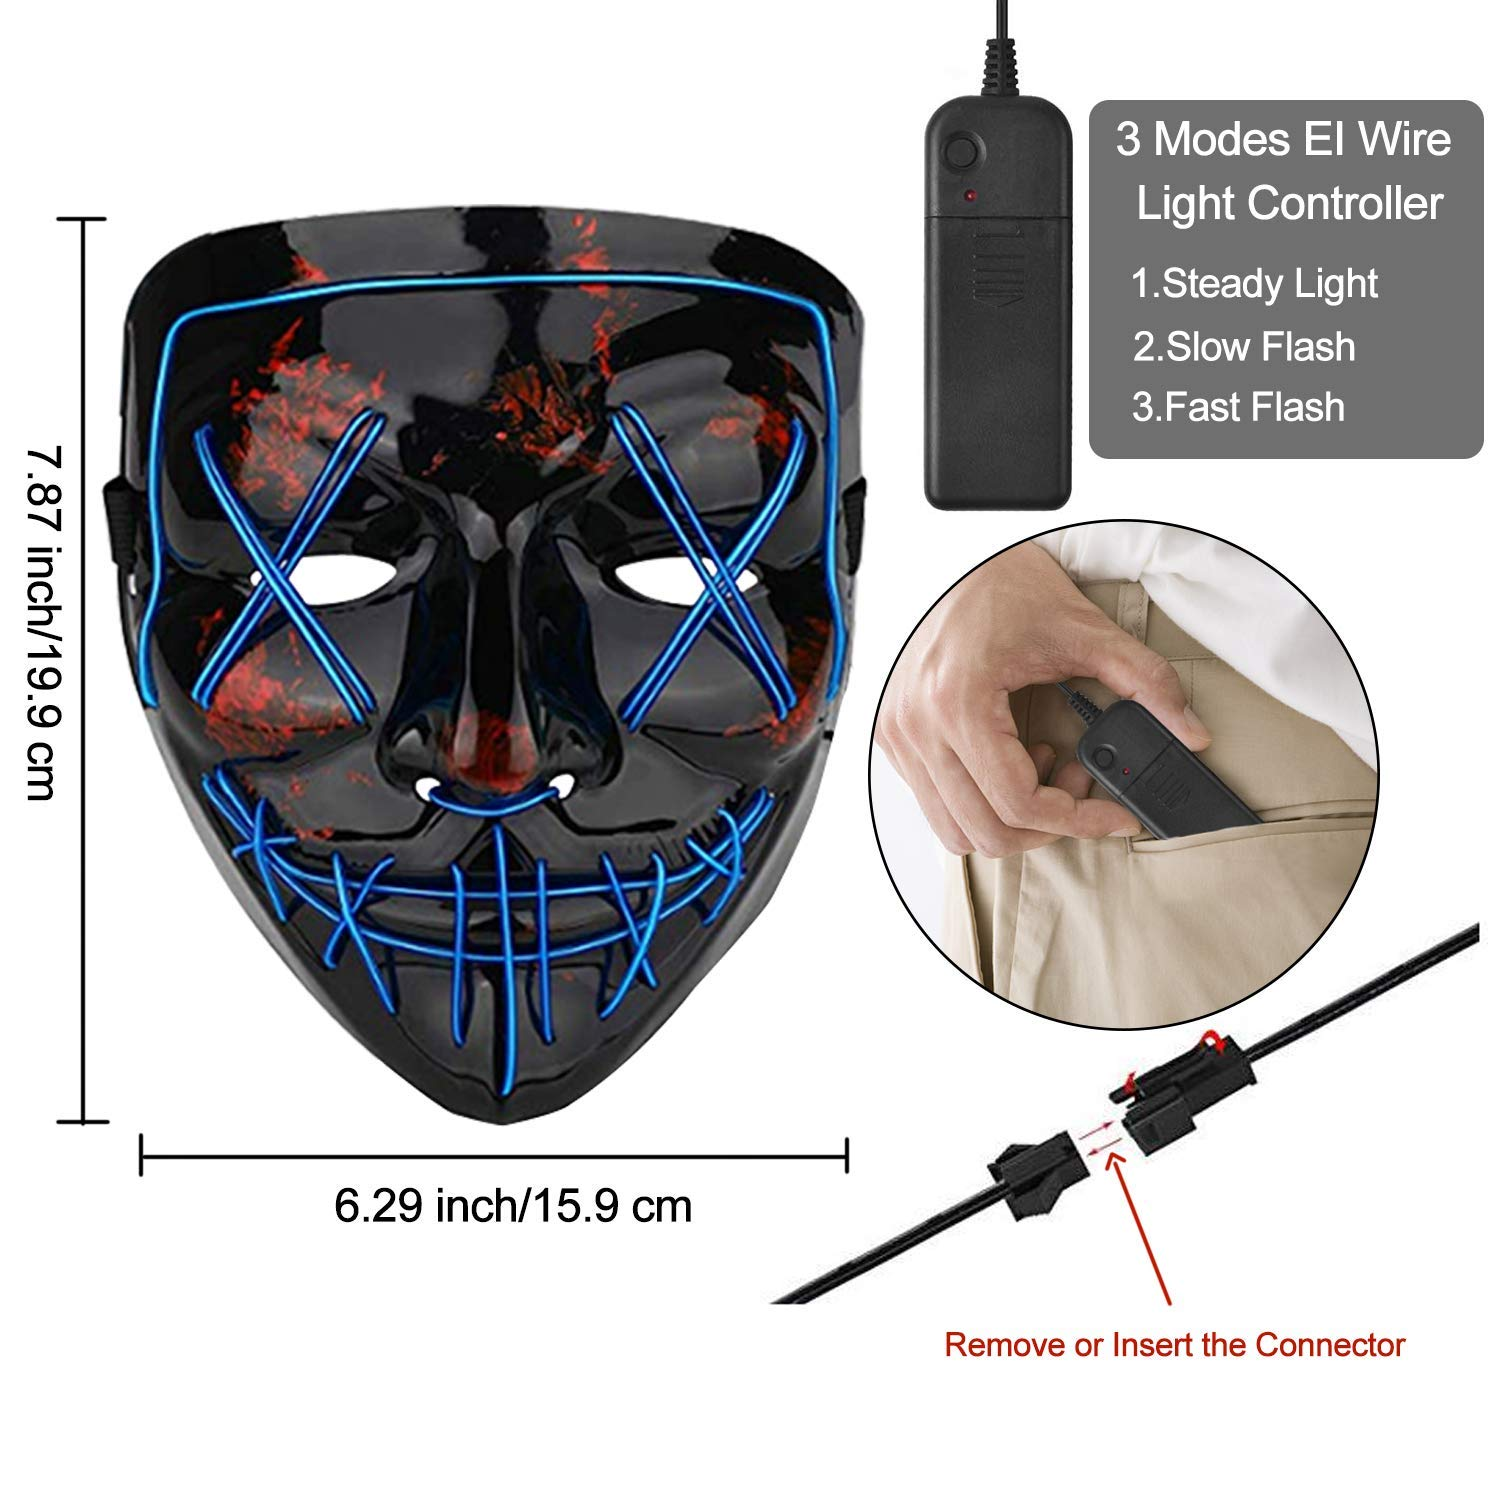 WLWQ 2-Pack Halloween Mask Unisex Scary LED Light Up Mask for Halloween Festival Cosplay Costume Party